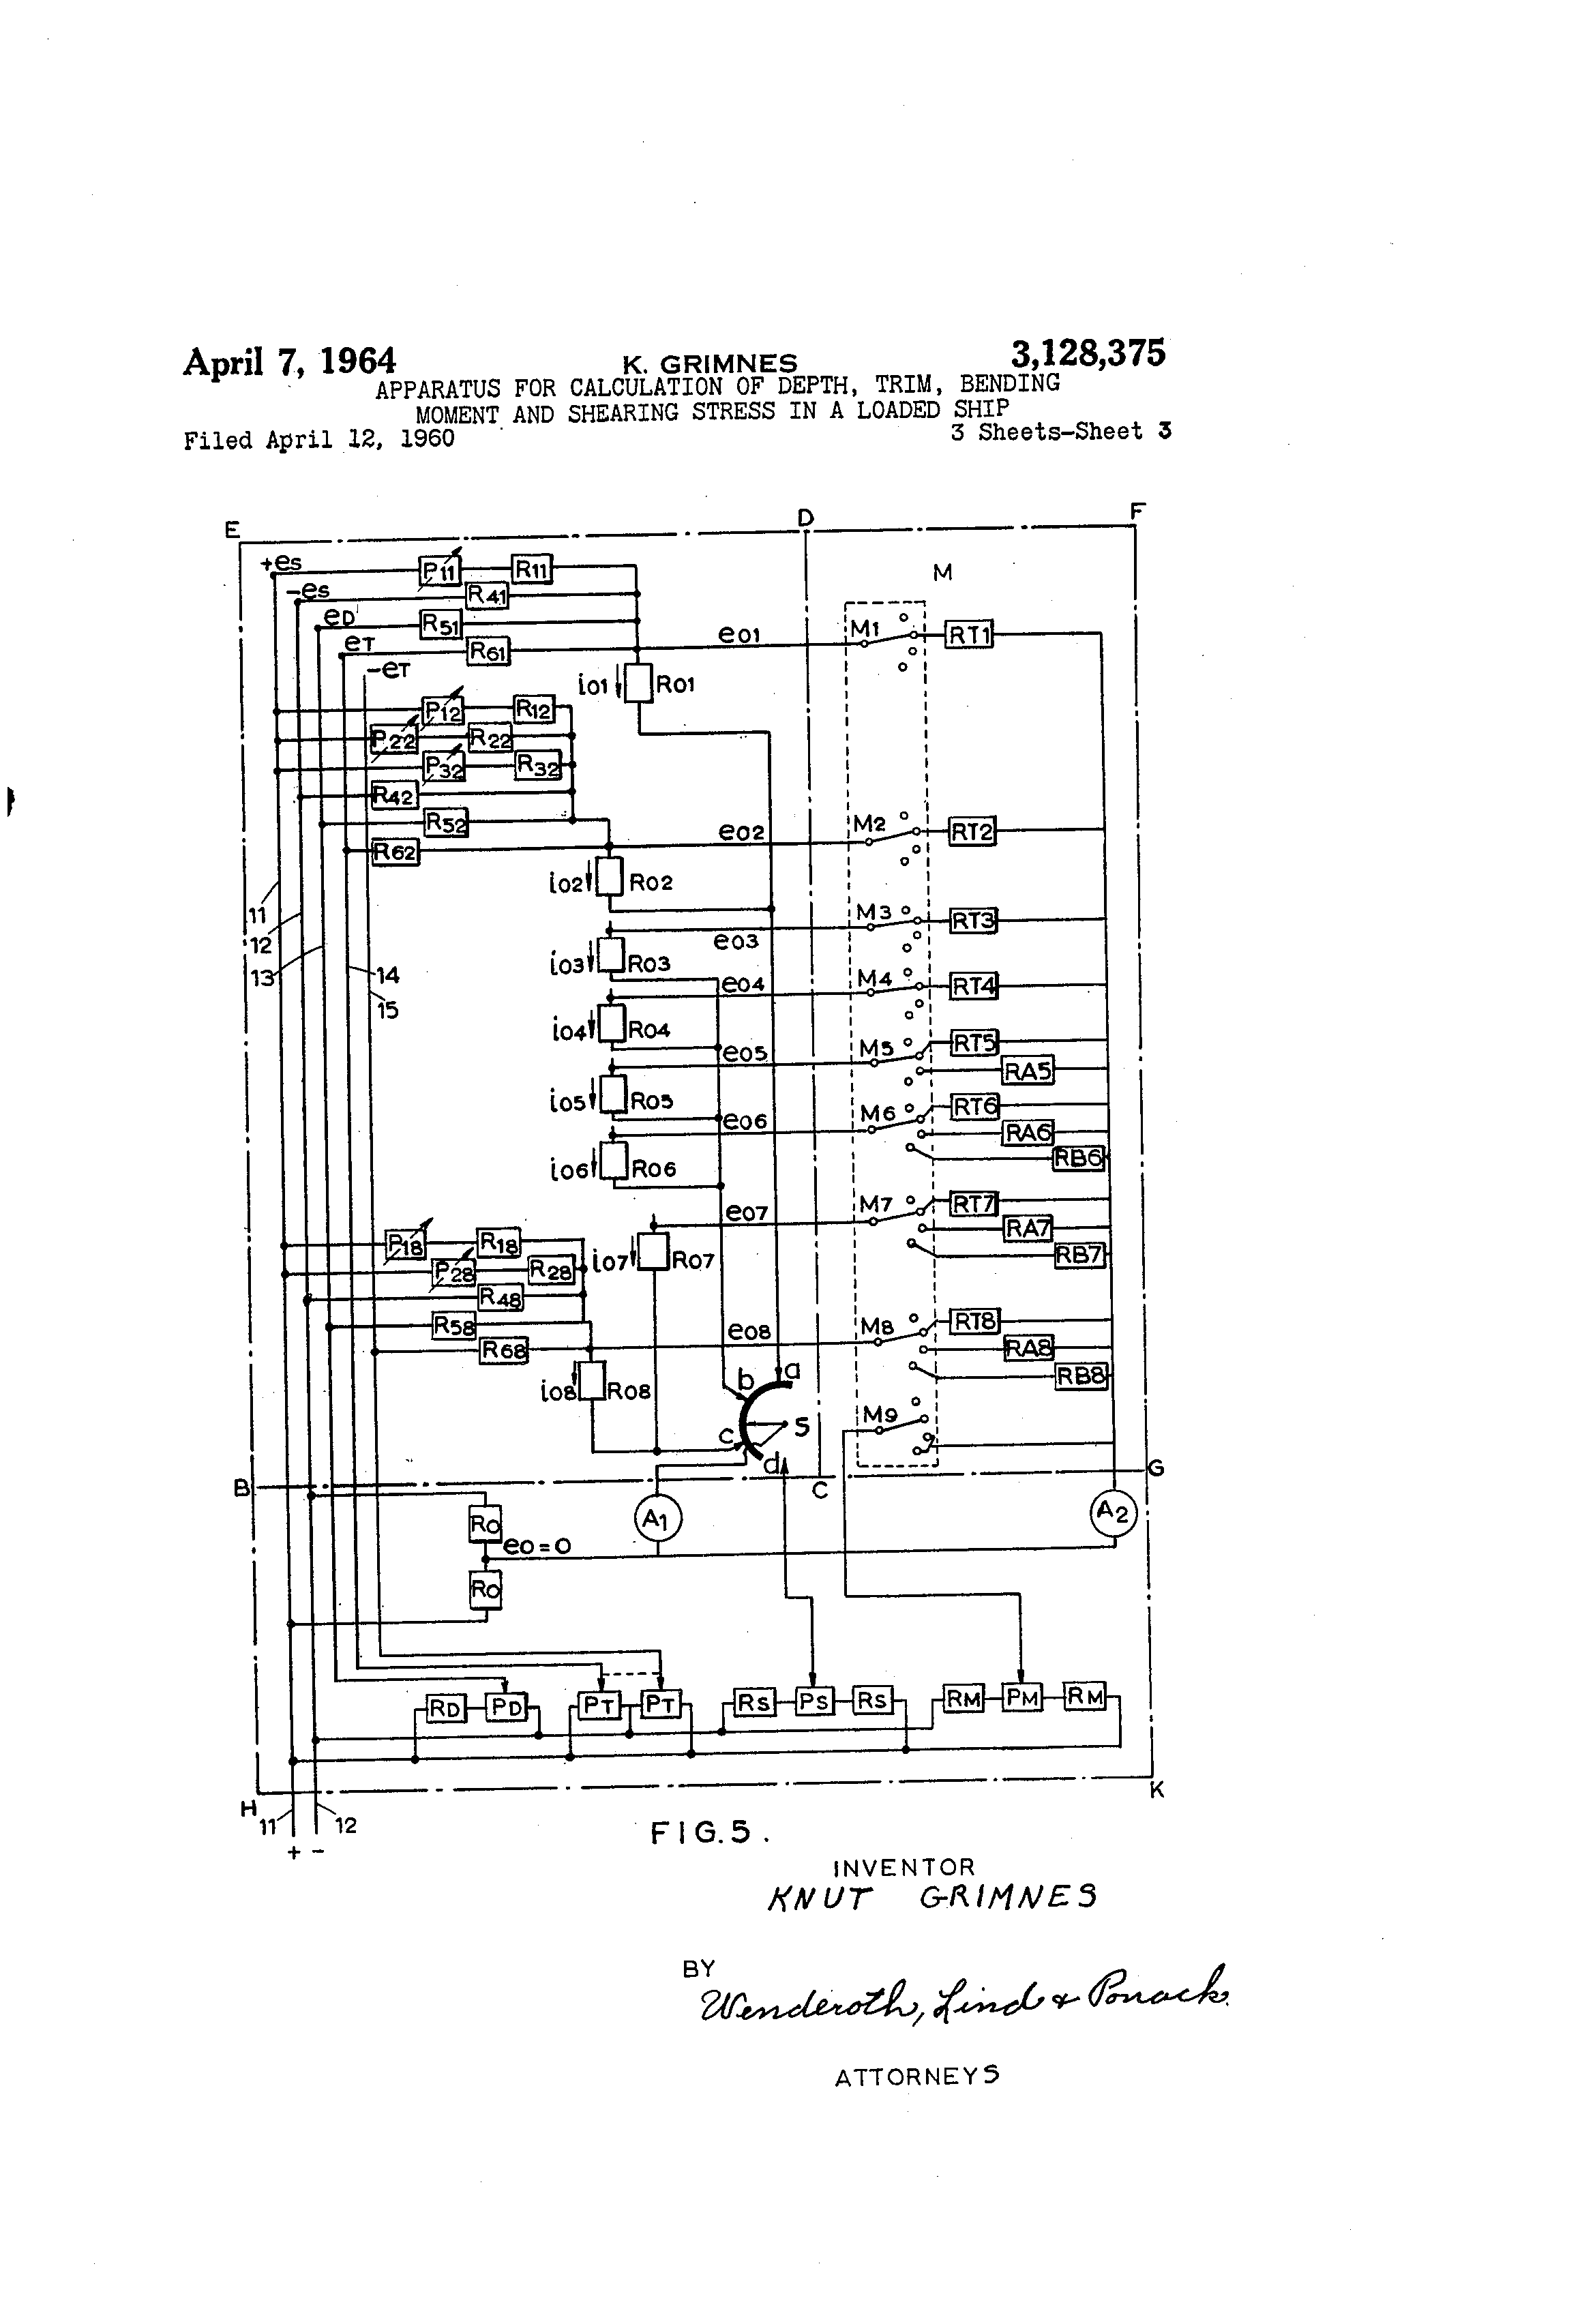 Brevet US3128375 - Apparatus for calculation of depth, trim